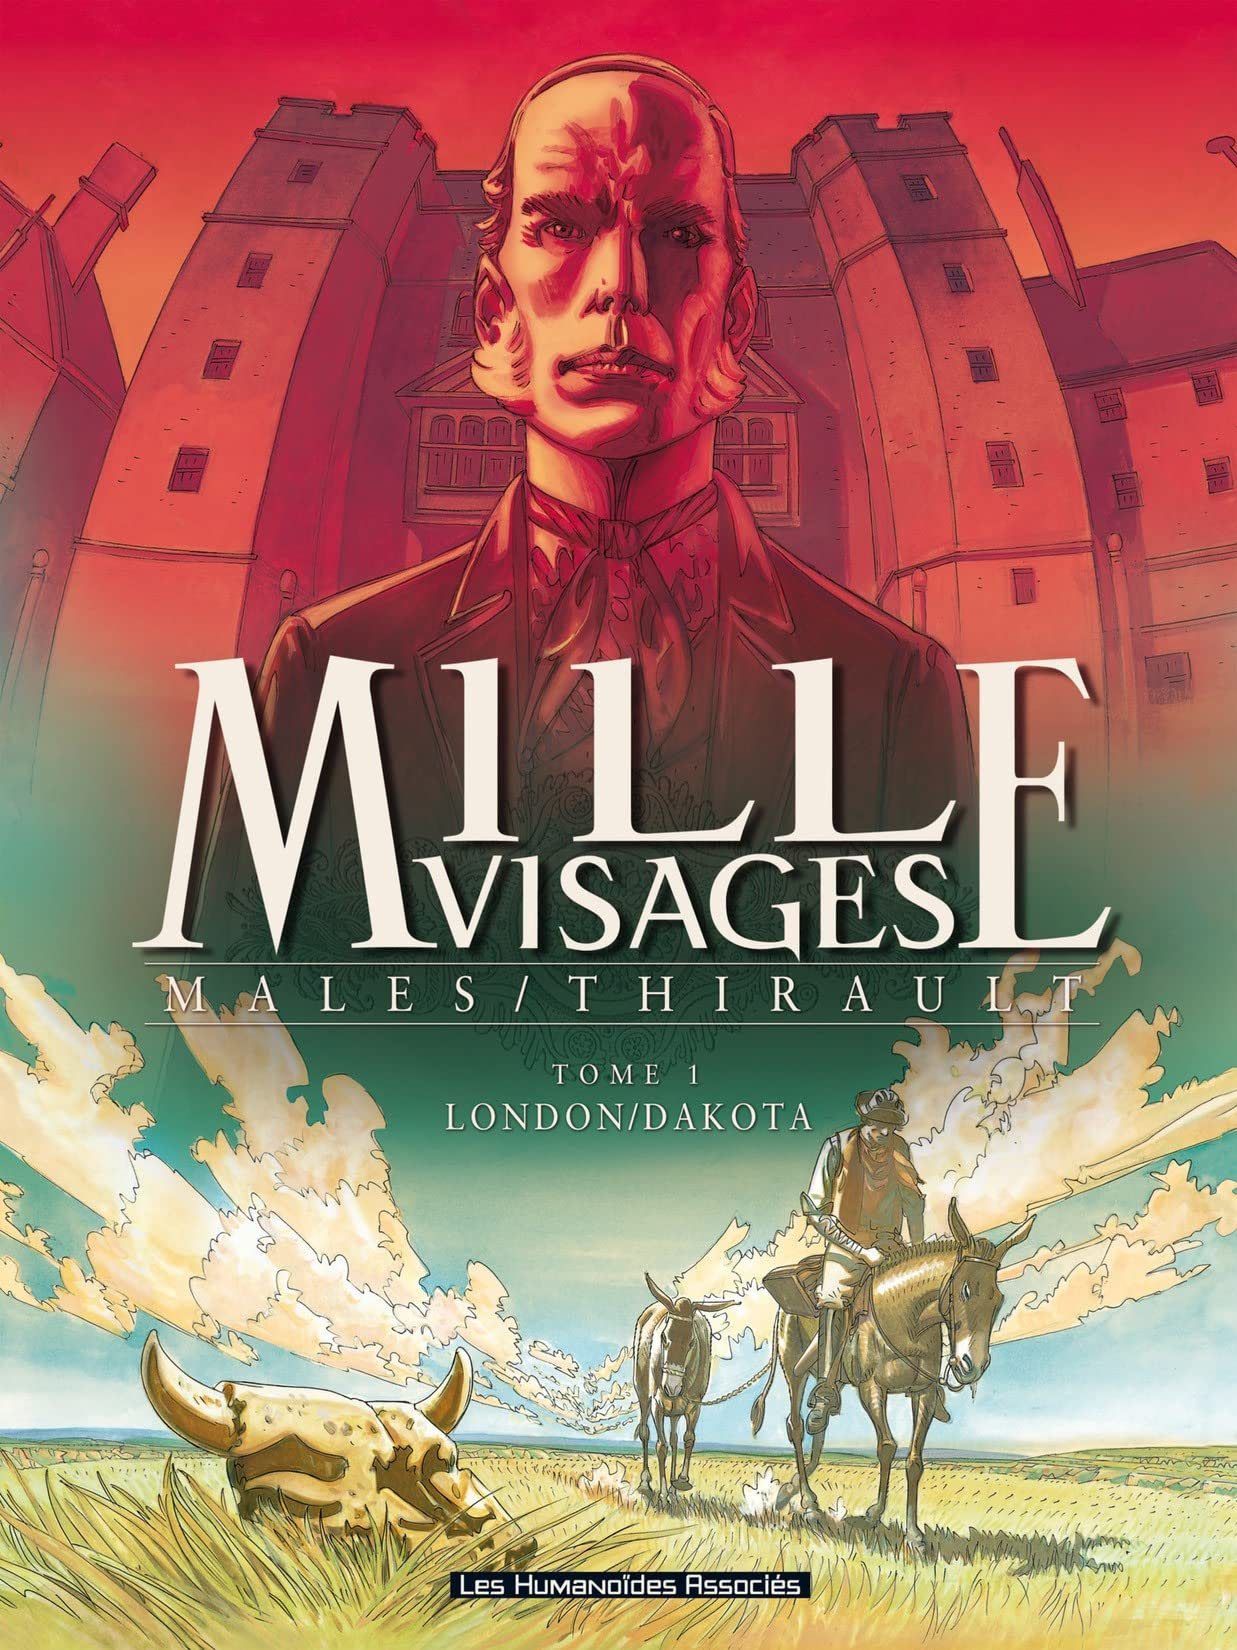 Mille Visages Vol. 1: London/Dakota